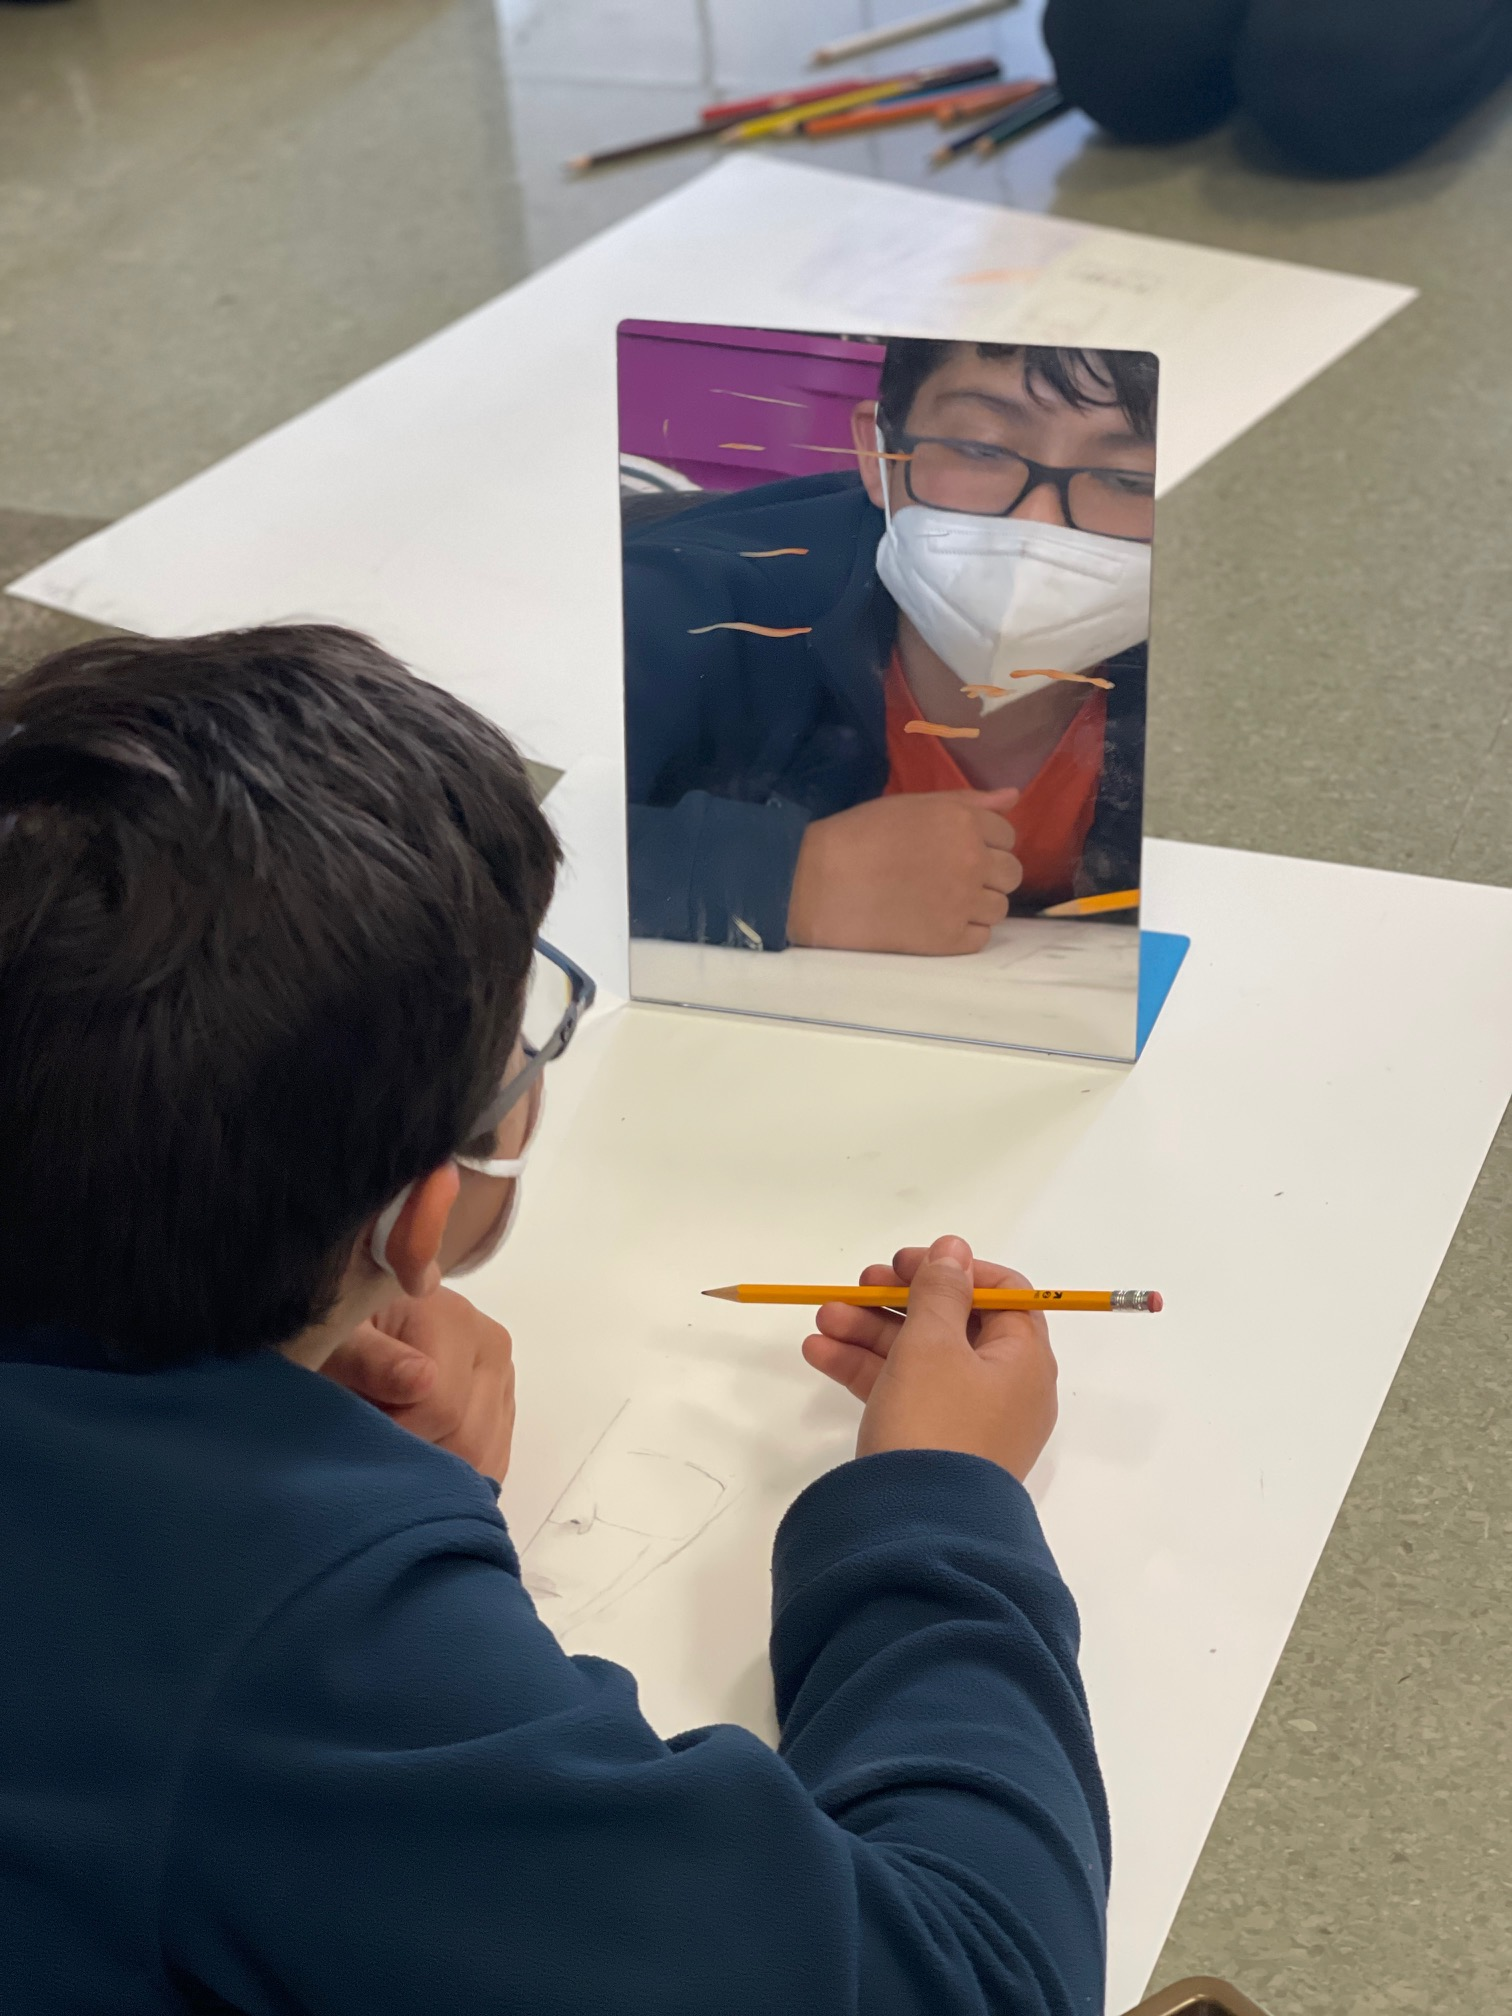 Daycroft students participate in all subjects